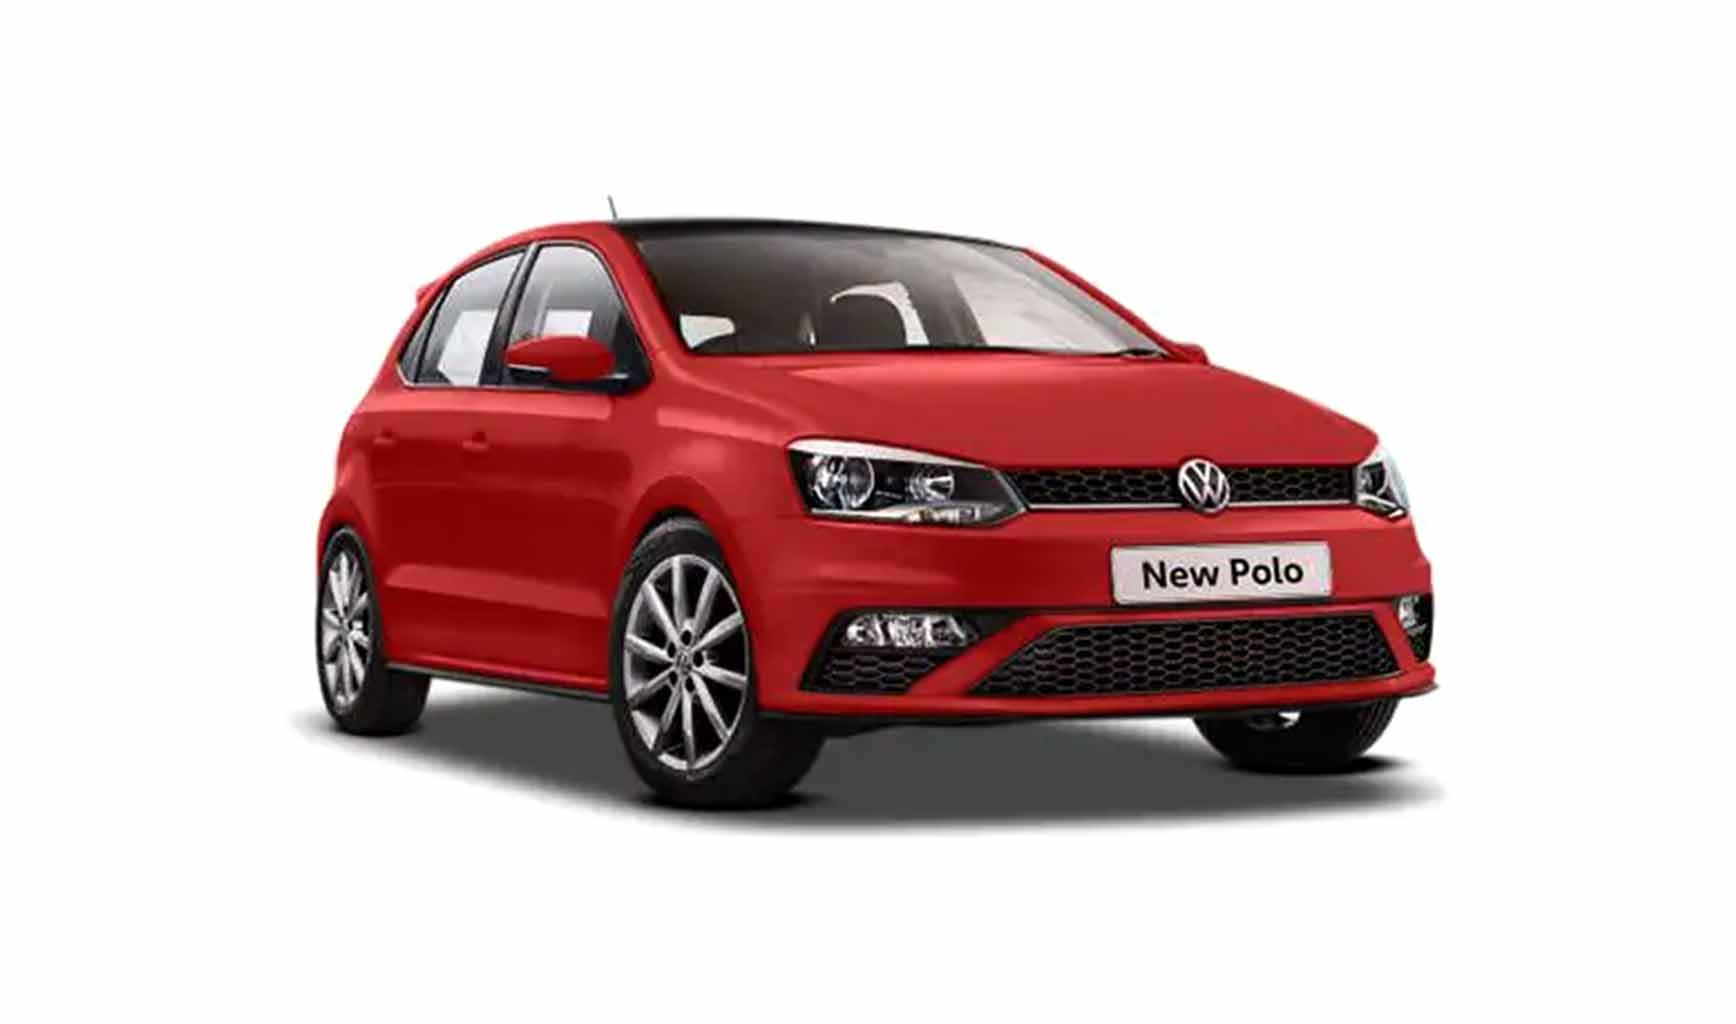 volkswagen-new-polo-lease-india-2021